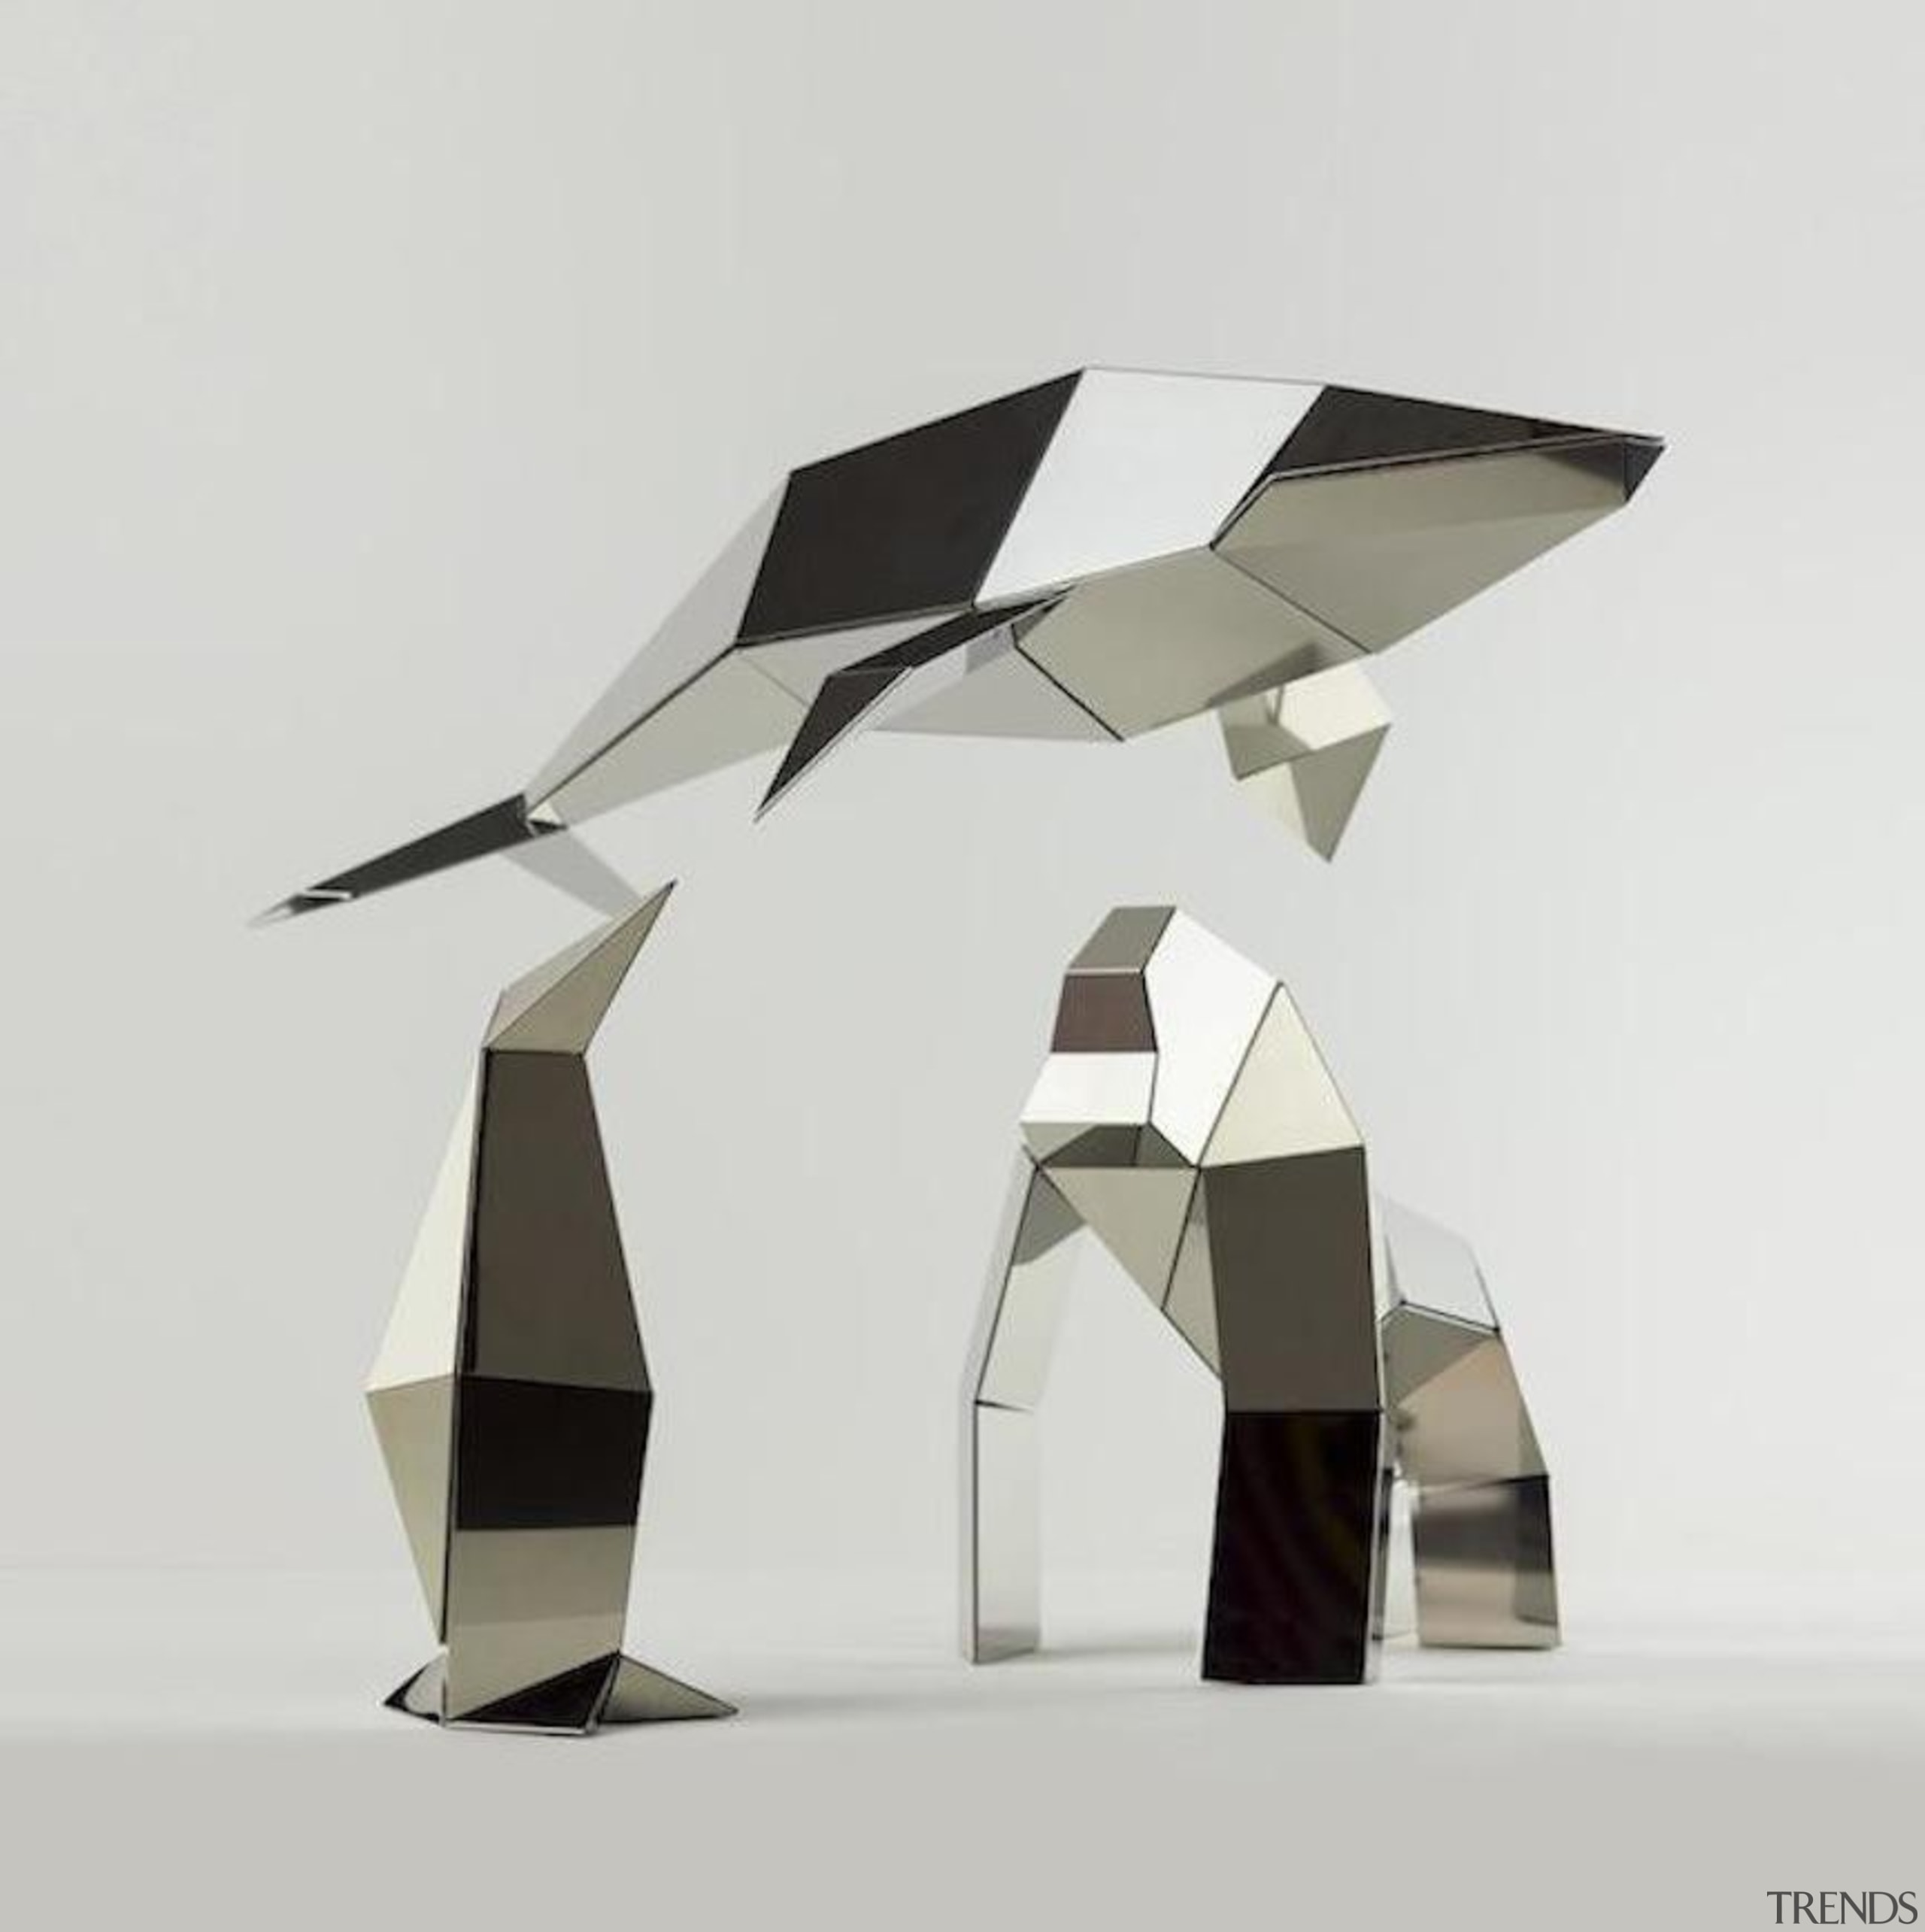 Poligon is a collection of foldable metallic sculptures furniture, product design, table, white